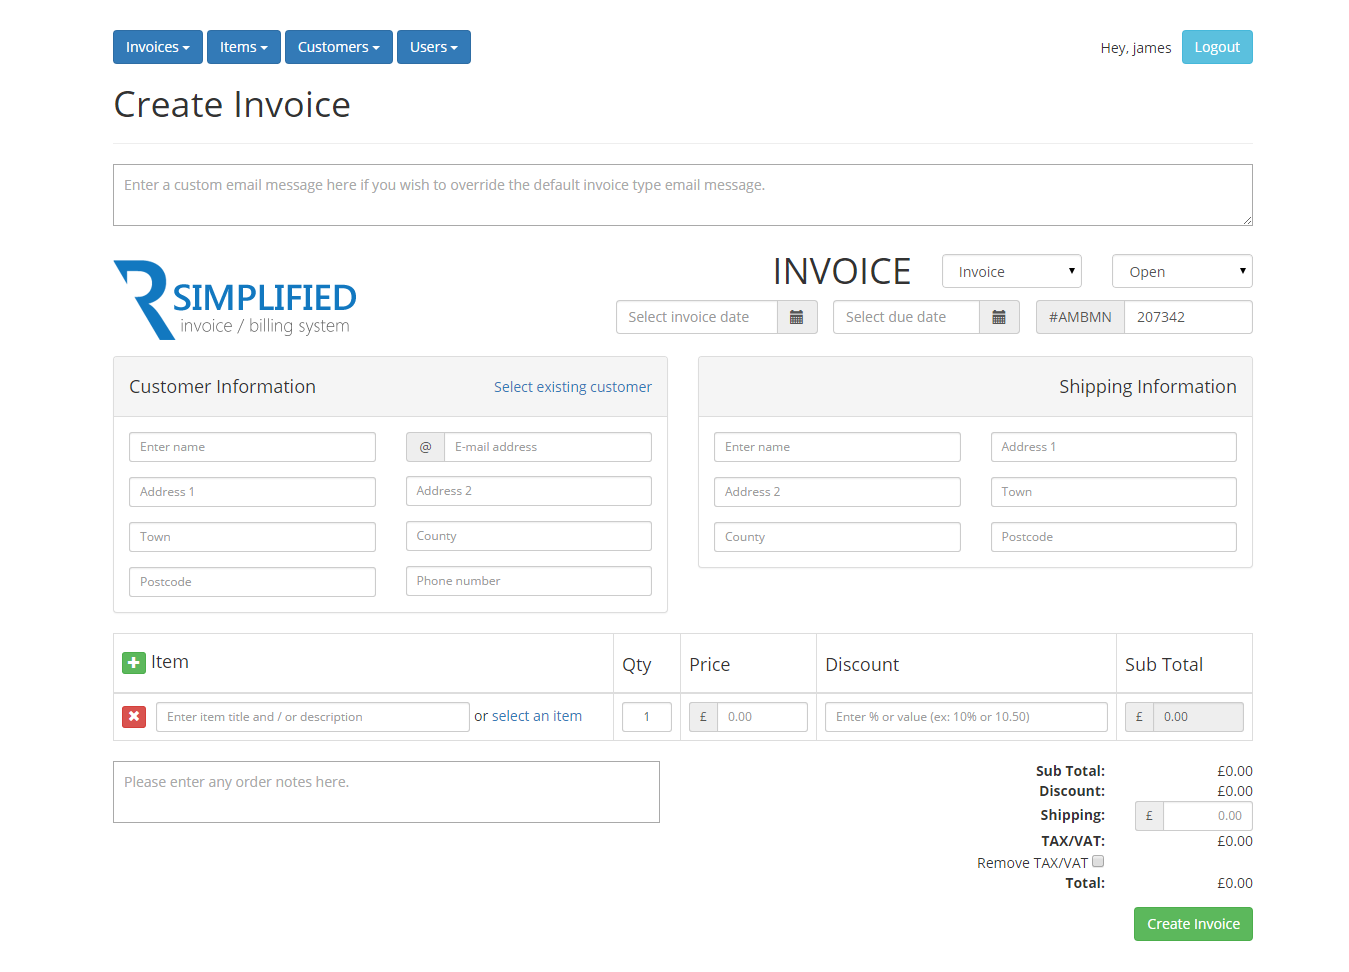 Hucareus  Personable Simplified Php Invoice  Billing System By Rebootdigitaluk  With Handsome  Createinvoicepng  With Captivating London Black Cab Receipt Also Download Free Receipt Template In Addition Mail Receipt And Uscis Receipt Number Lookup As Well As Receipt Book Tesco Additionally Renters Receipt From Codecanyonnet With Hucareus  Handsome Simplified Php Invoice  Billing System By Rebootdigitaluk  With Captivating  Createinvoicepng  And Personable London Black Cab Receipt Also Download Free Receipt Template In Addition Mail Receipt From Codecanyonnet